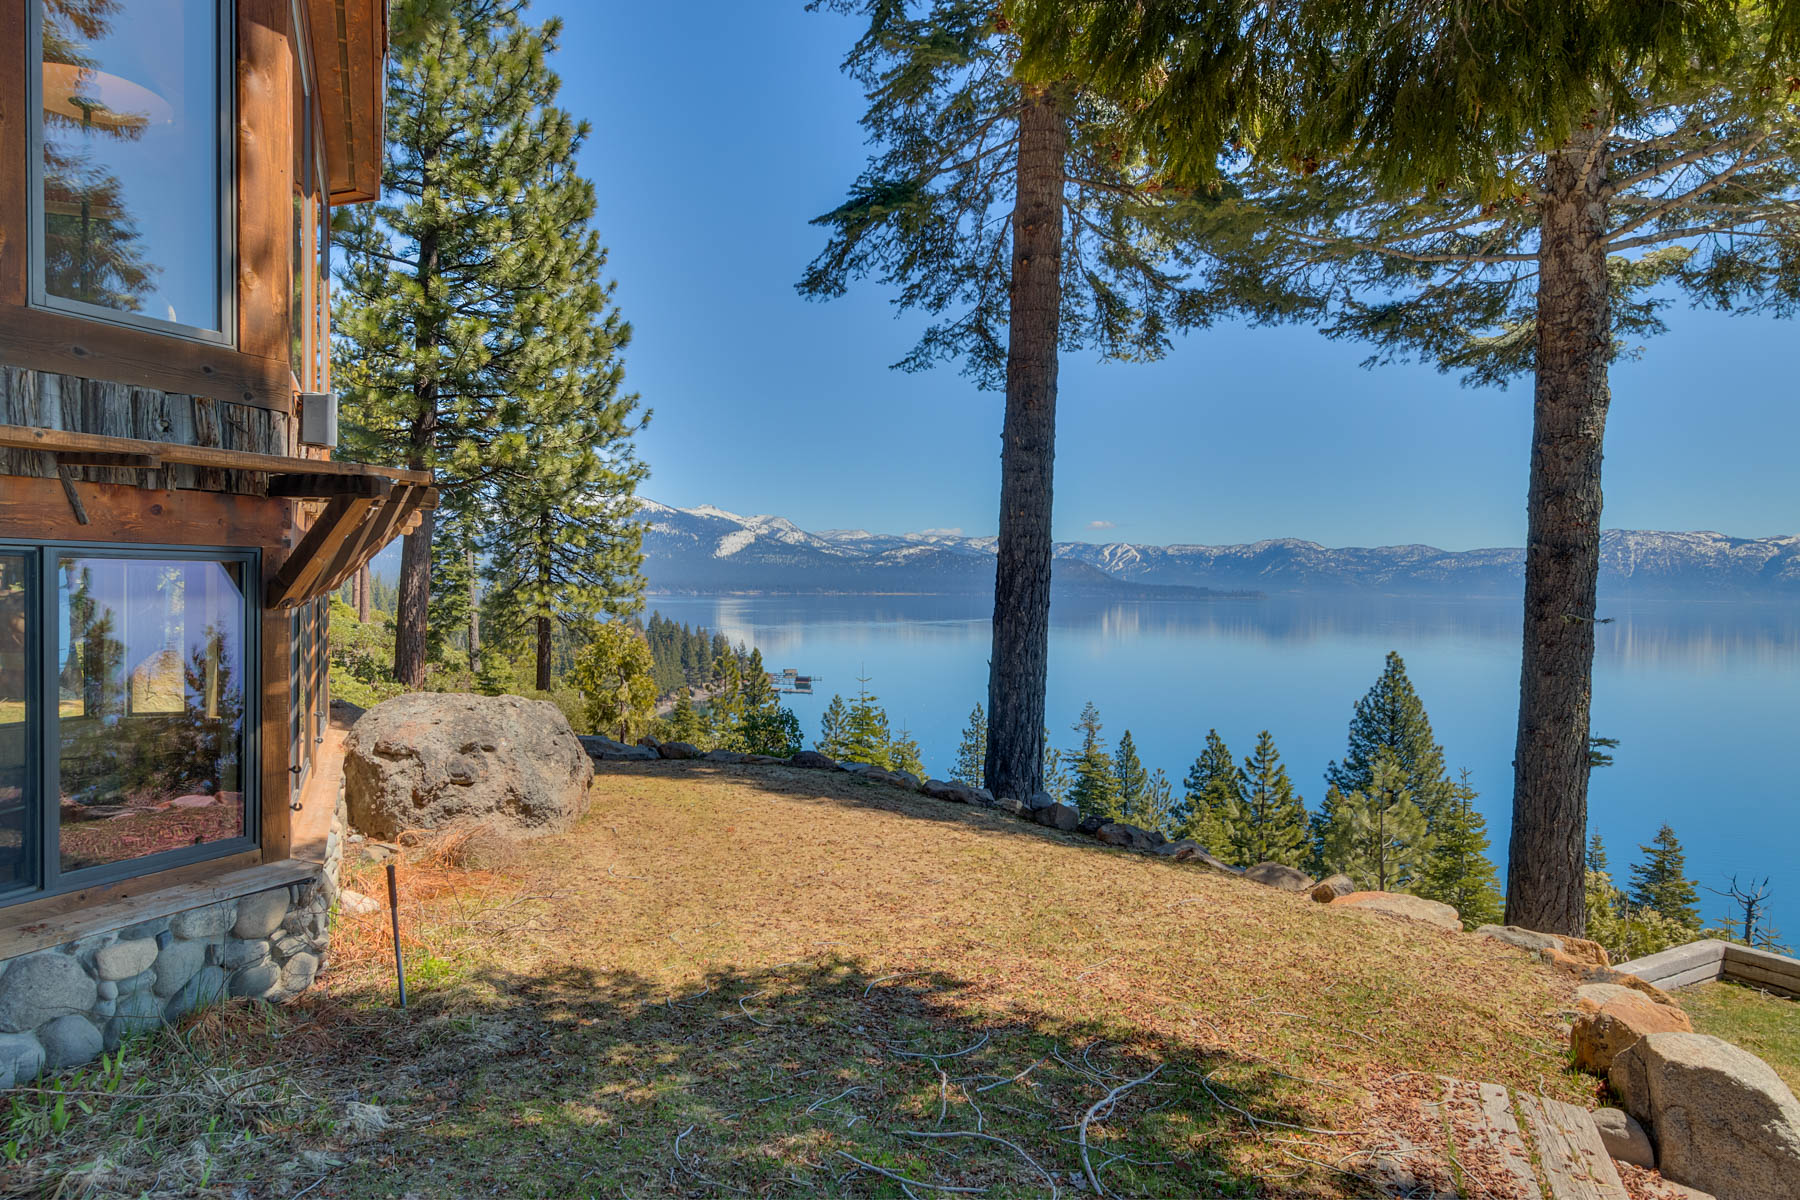 Additional photo for property listing at 488 Old County Road, Carnelian Bay, CA 96140 488 Old County Road Carnelian Bay, California 96140 Estados Unidos